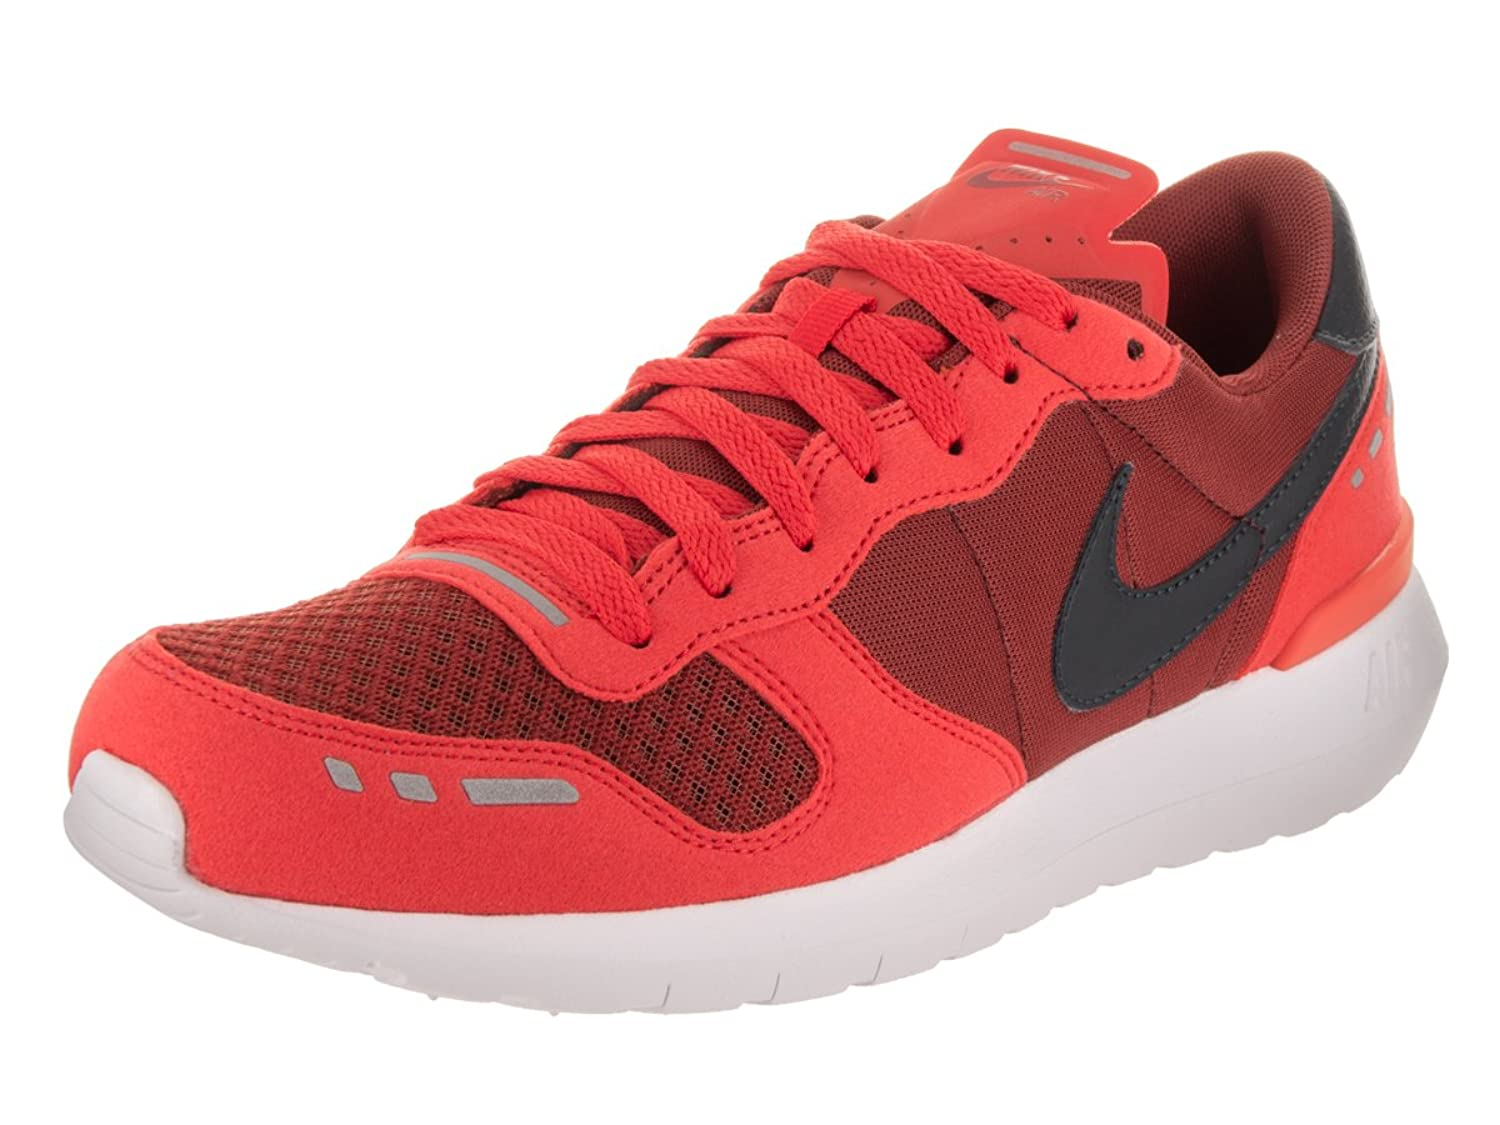 official photos 0054f 309ac NIKE Men s Free Rn Distance 2 Competition Running Shoes